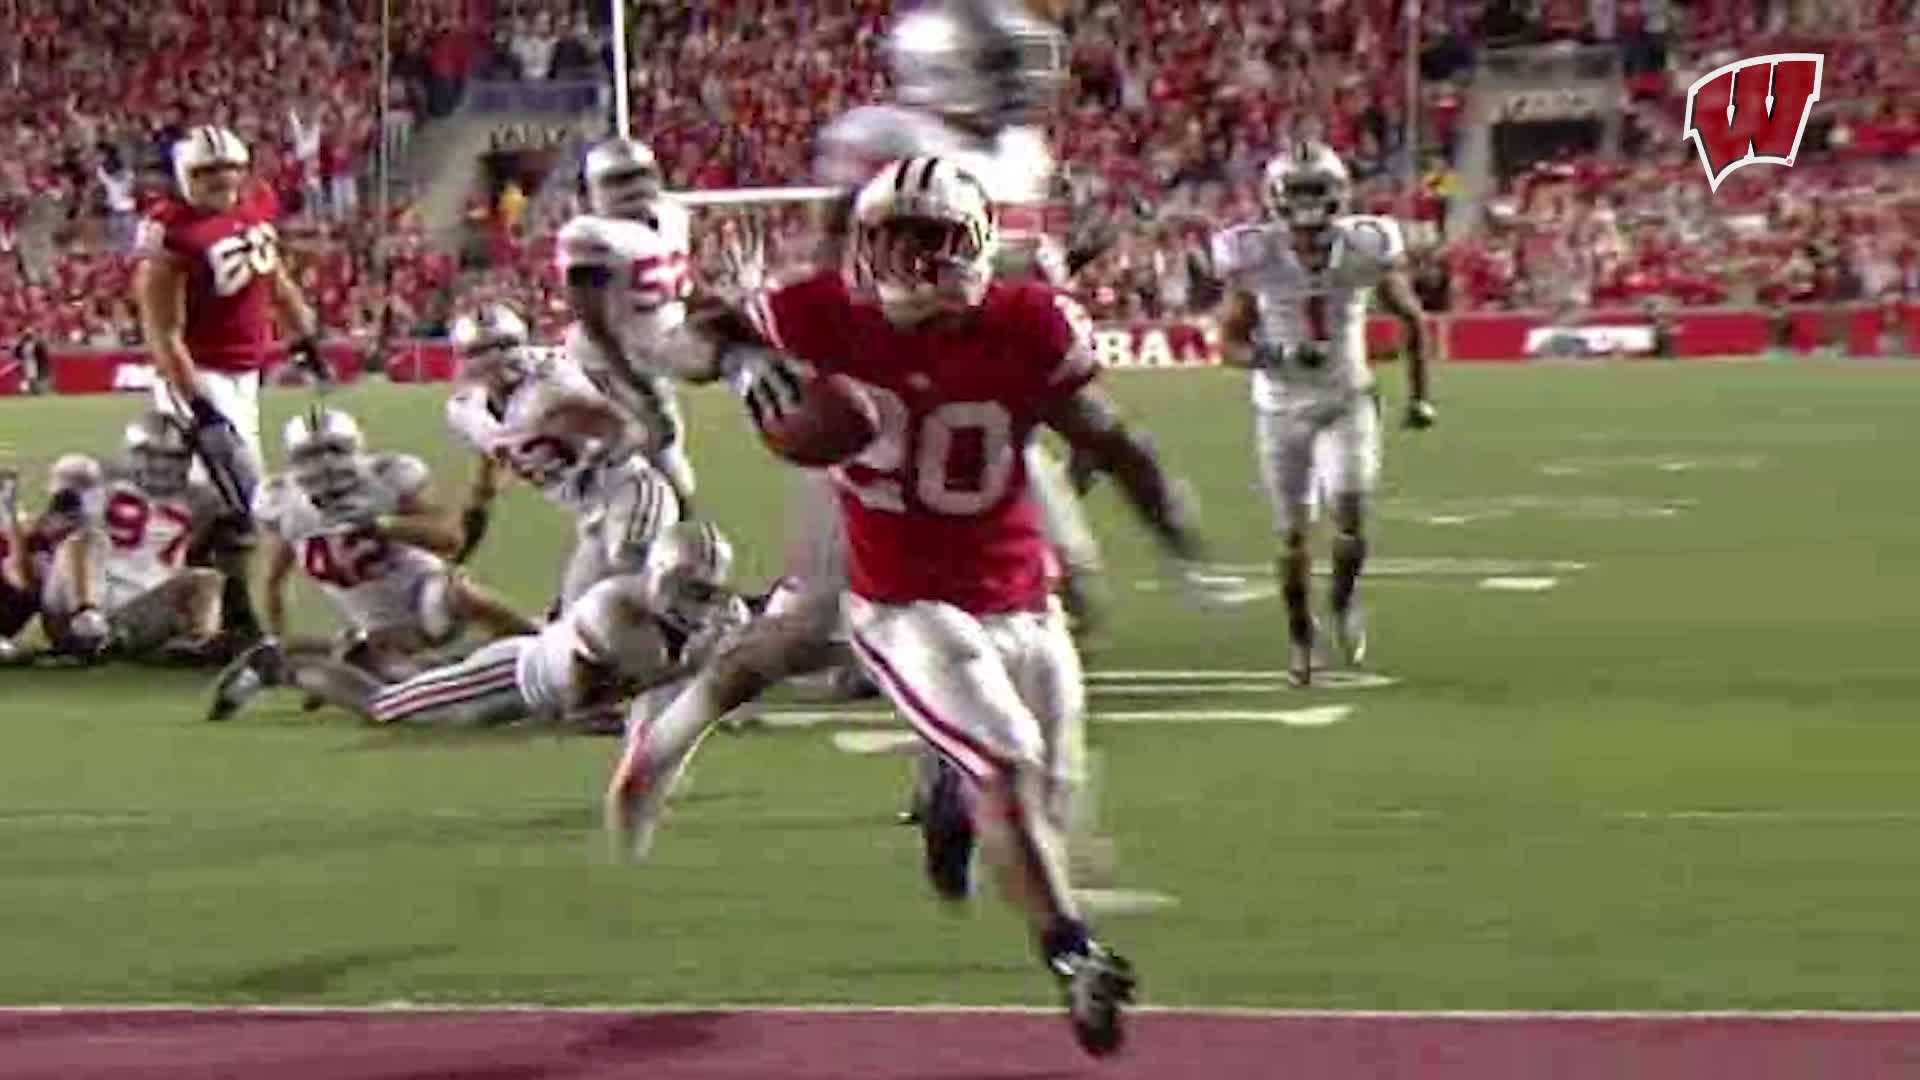 Inside the Huddle: Pryor, receivers dialed in on details | Wisconsin